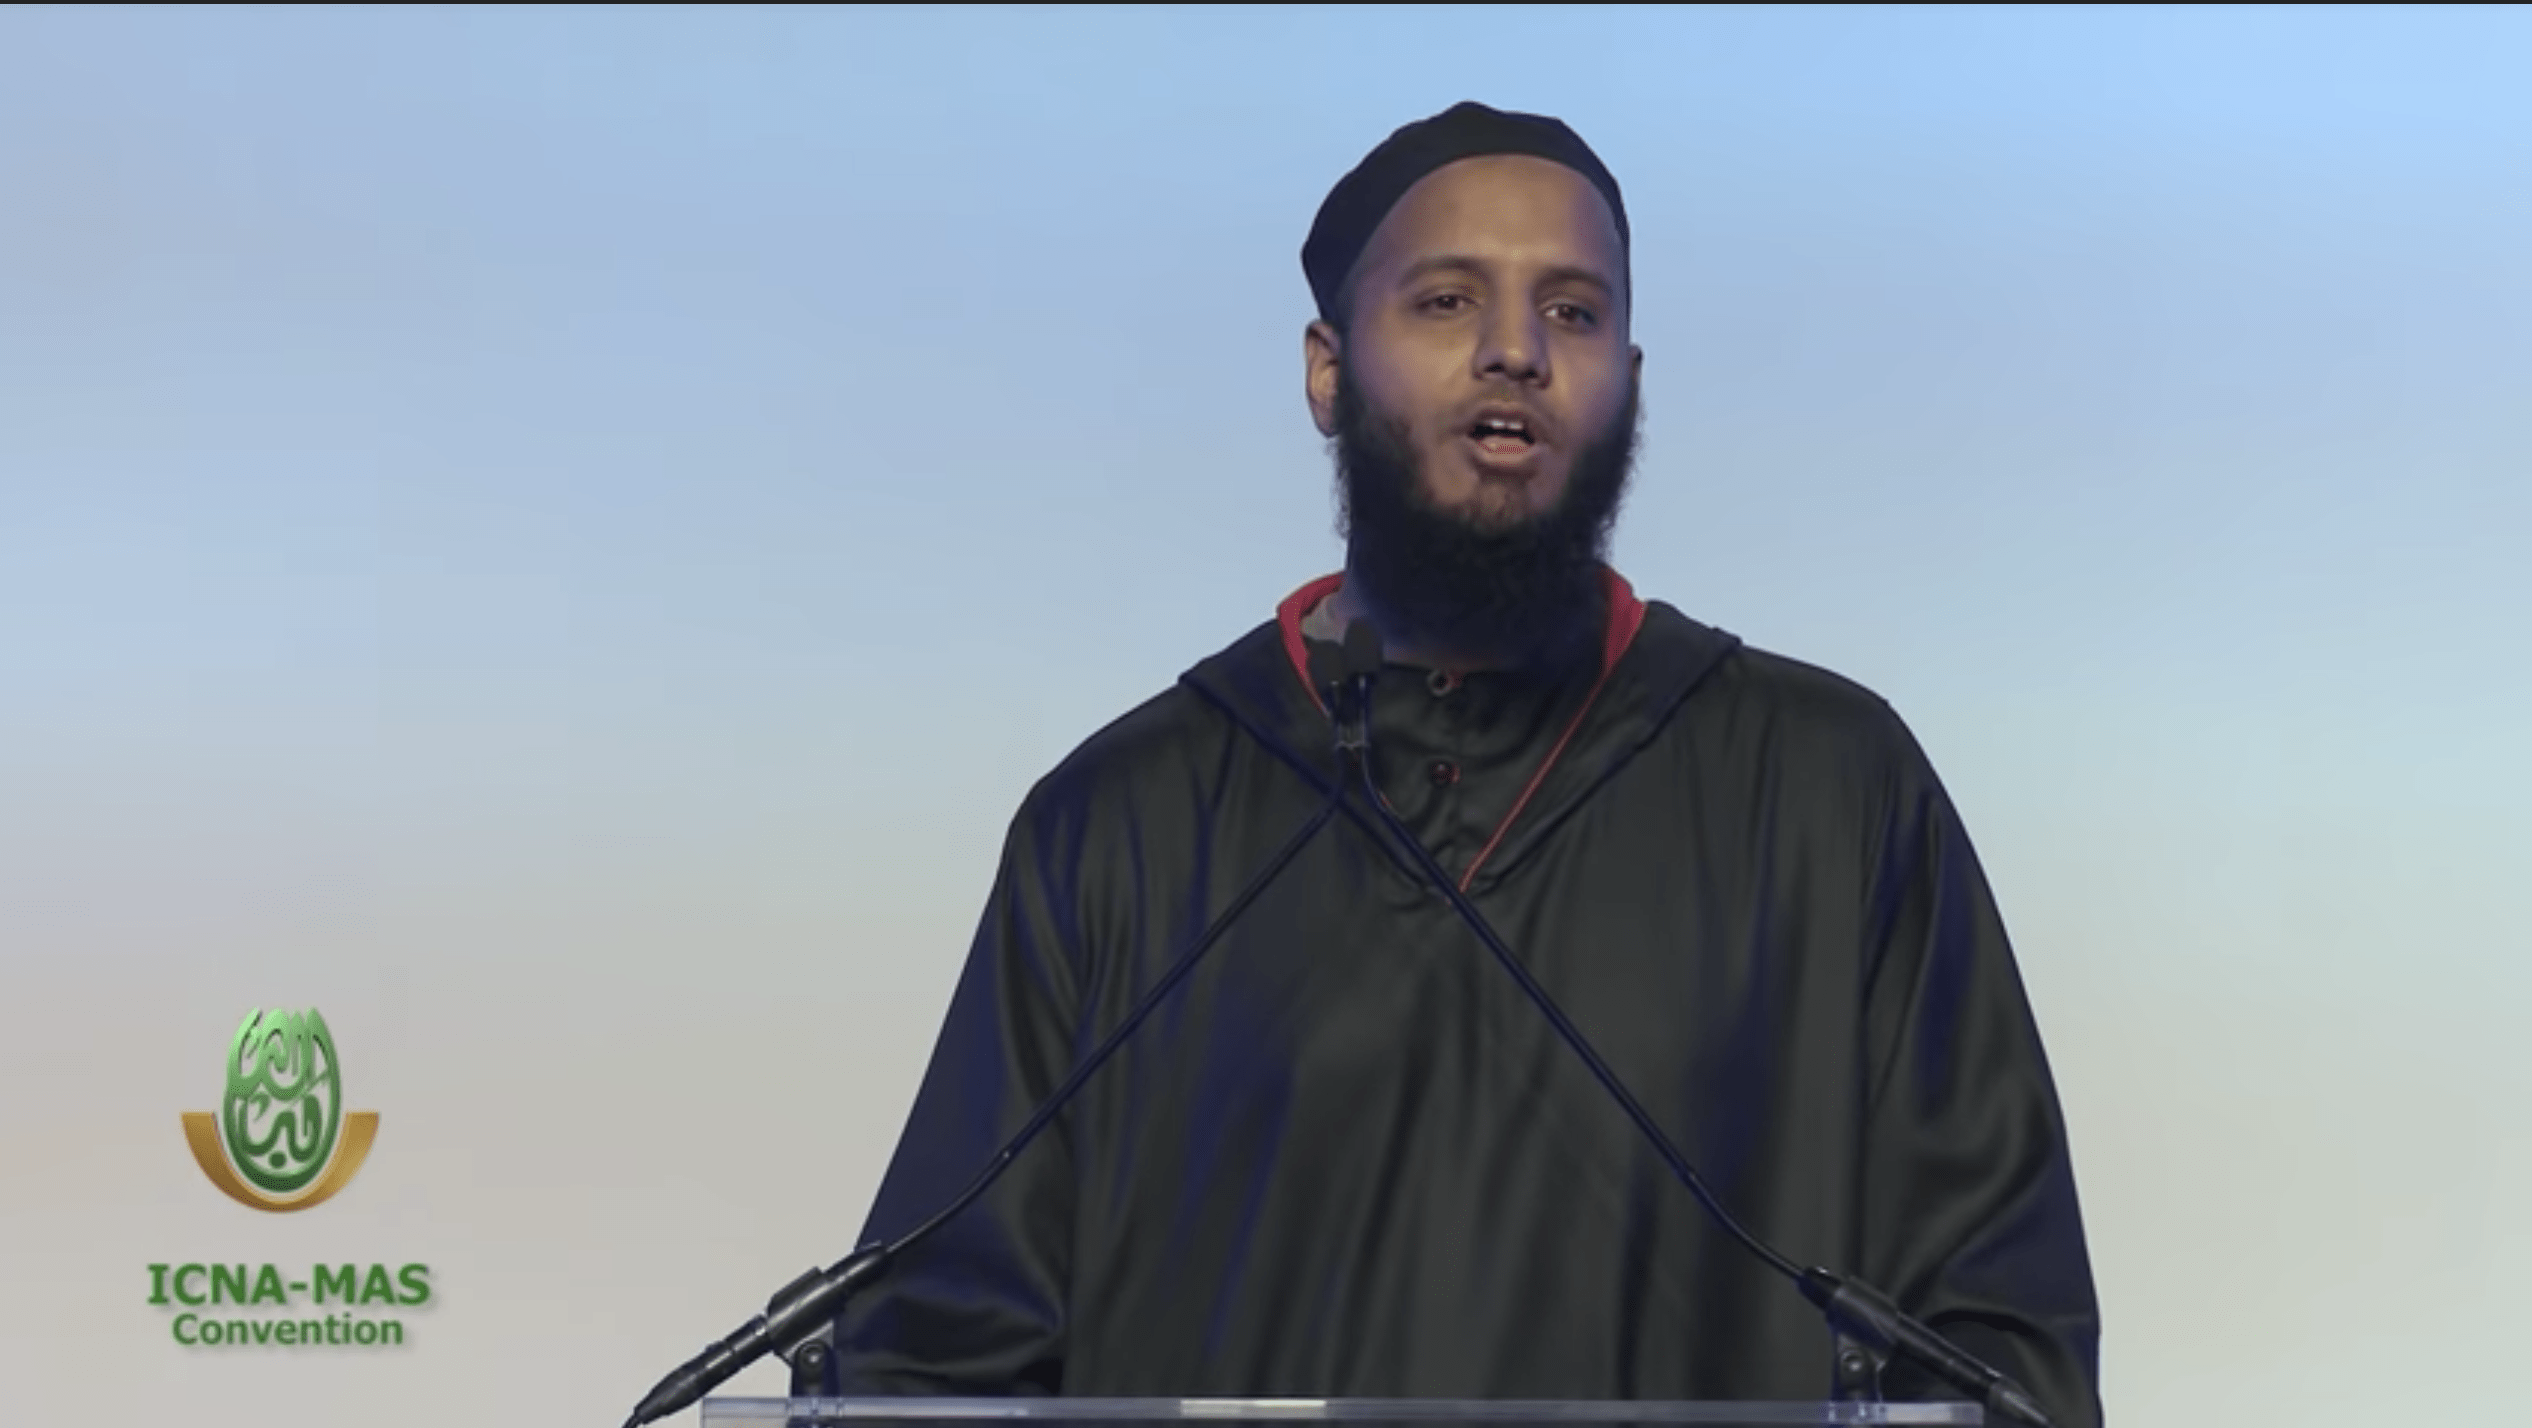 Hussain Kamani – Prophet's Mission: Changed People